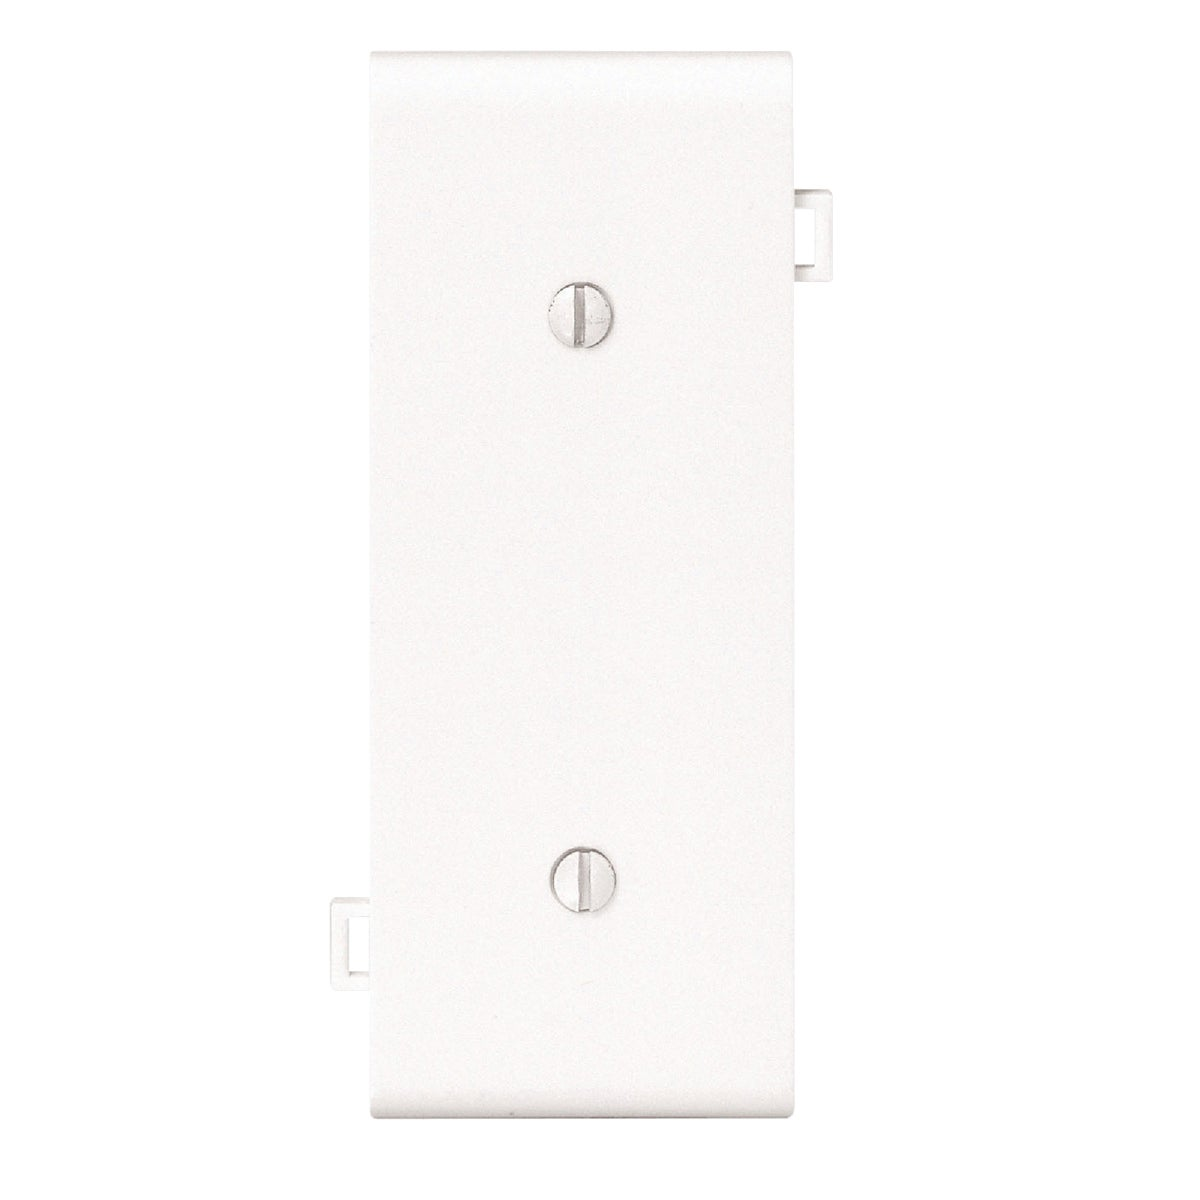 WHT BLANK CENTER PLATE - 006-PSC14W by Leviton Mfg Co